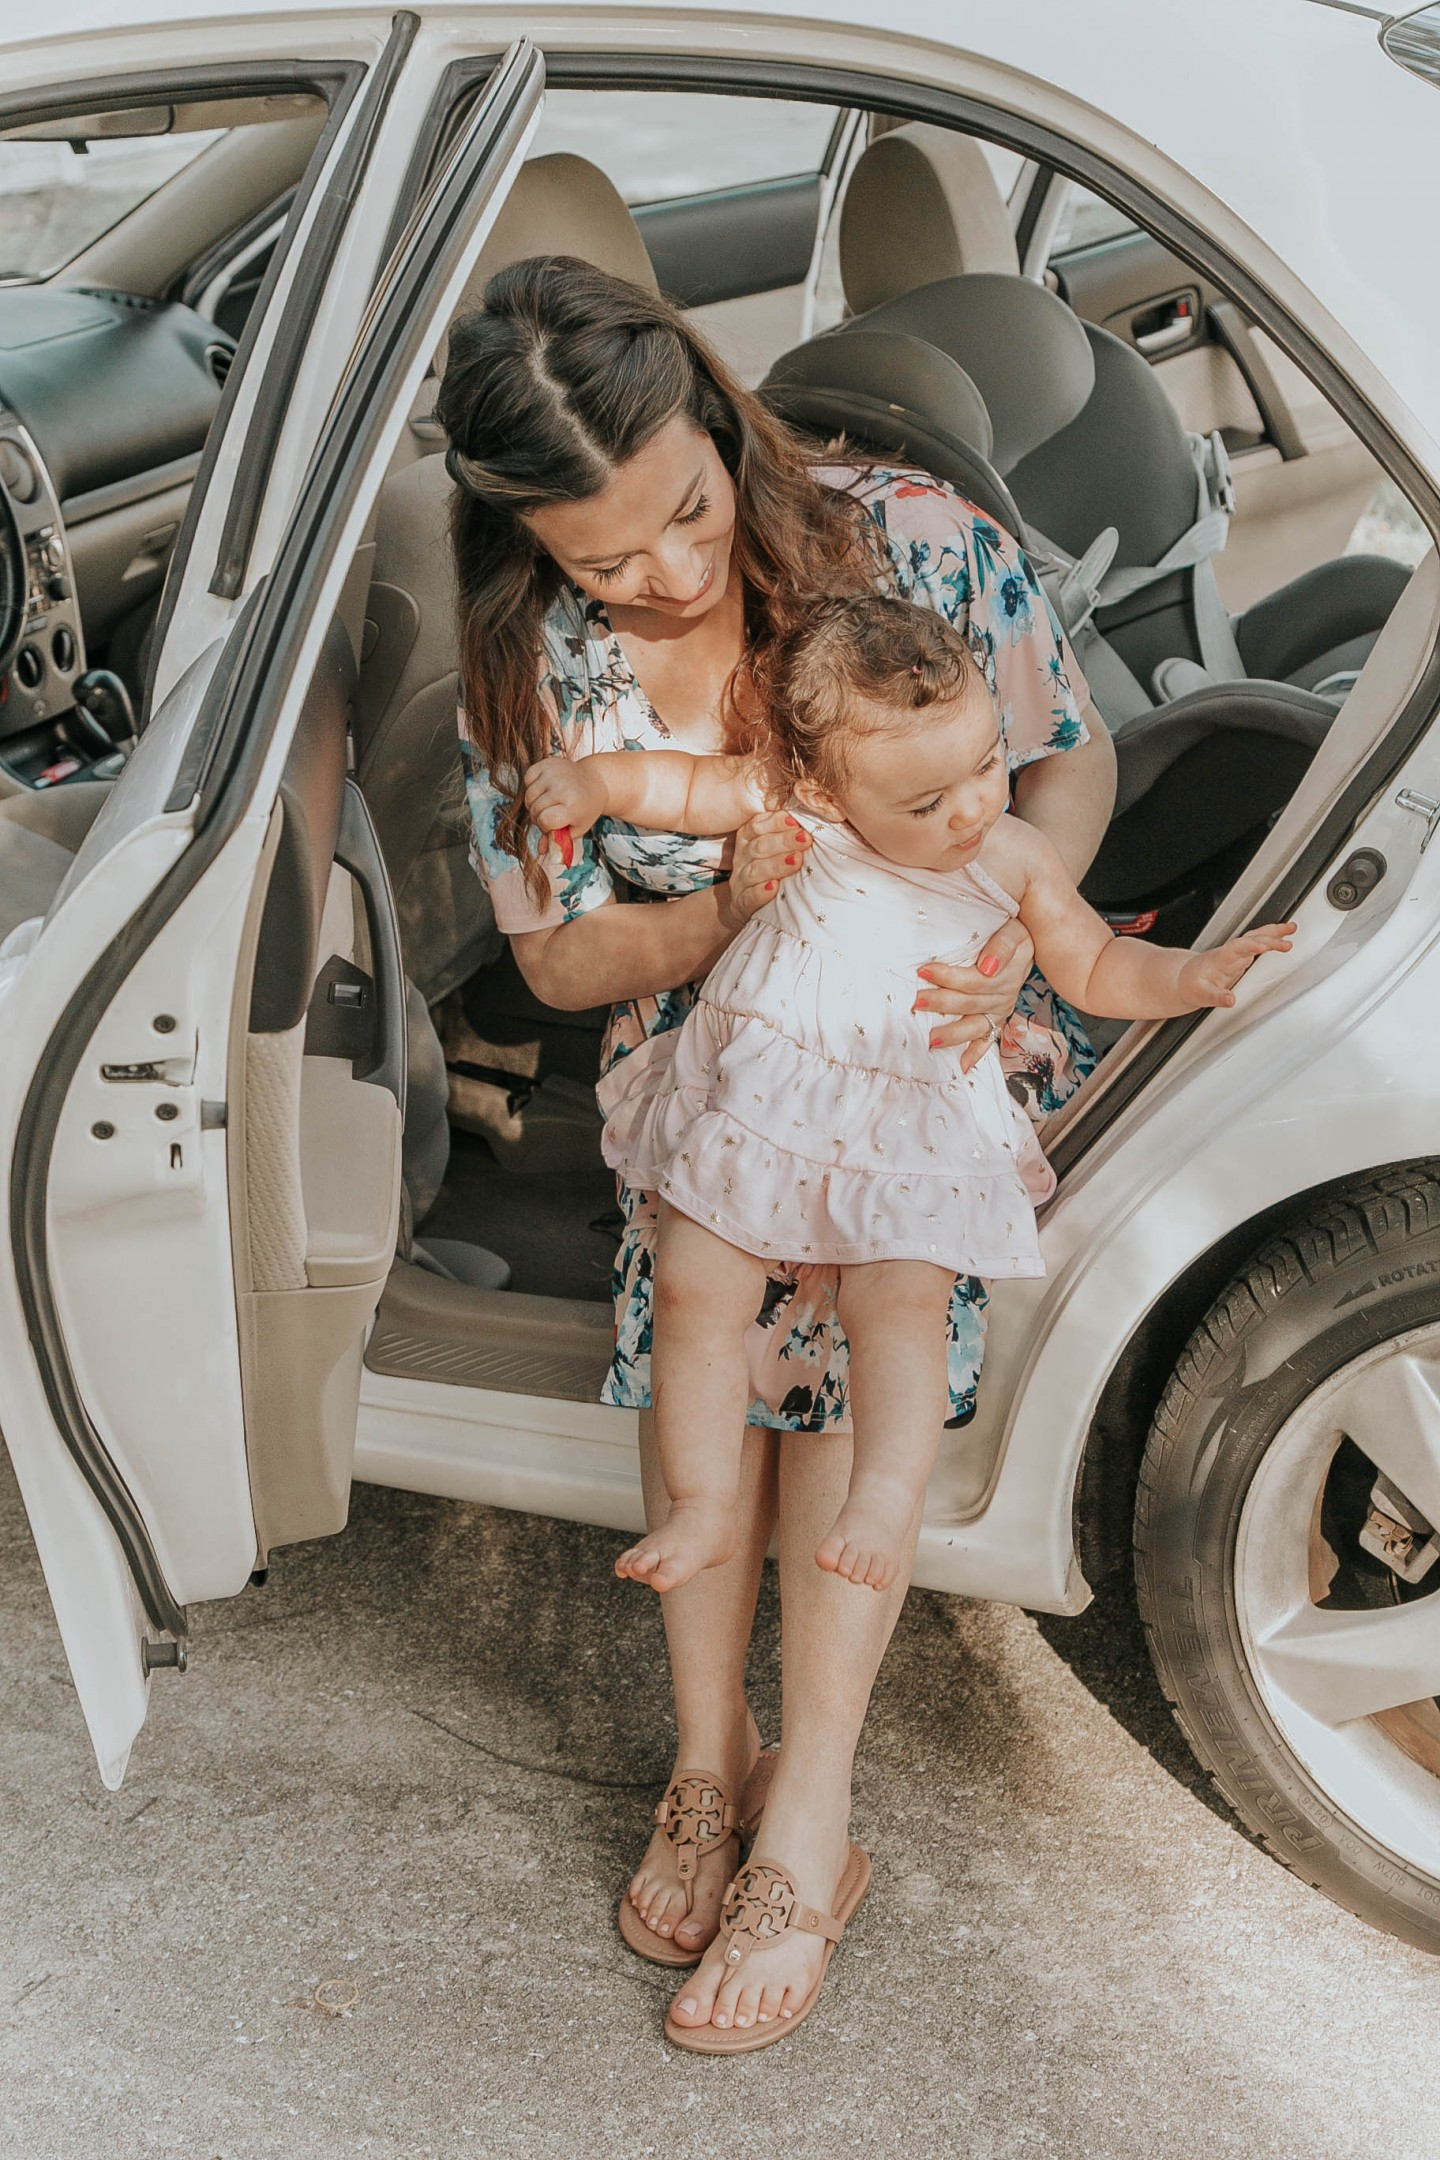 HOW WE MAKE CAR RIDES MORE ENJOYABLE WITH A TODDLER